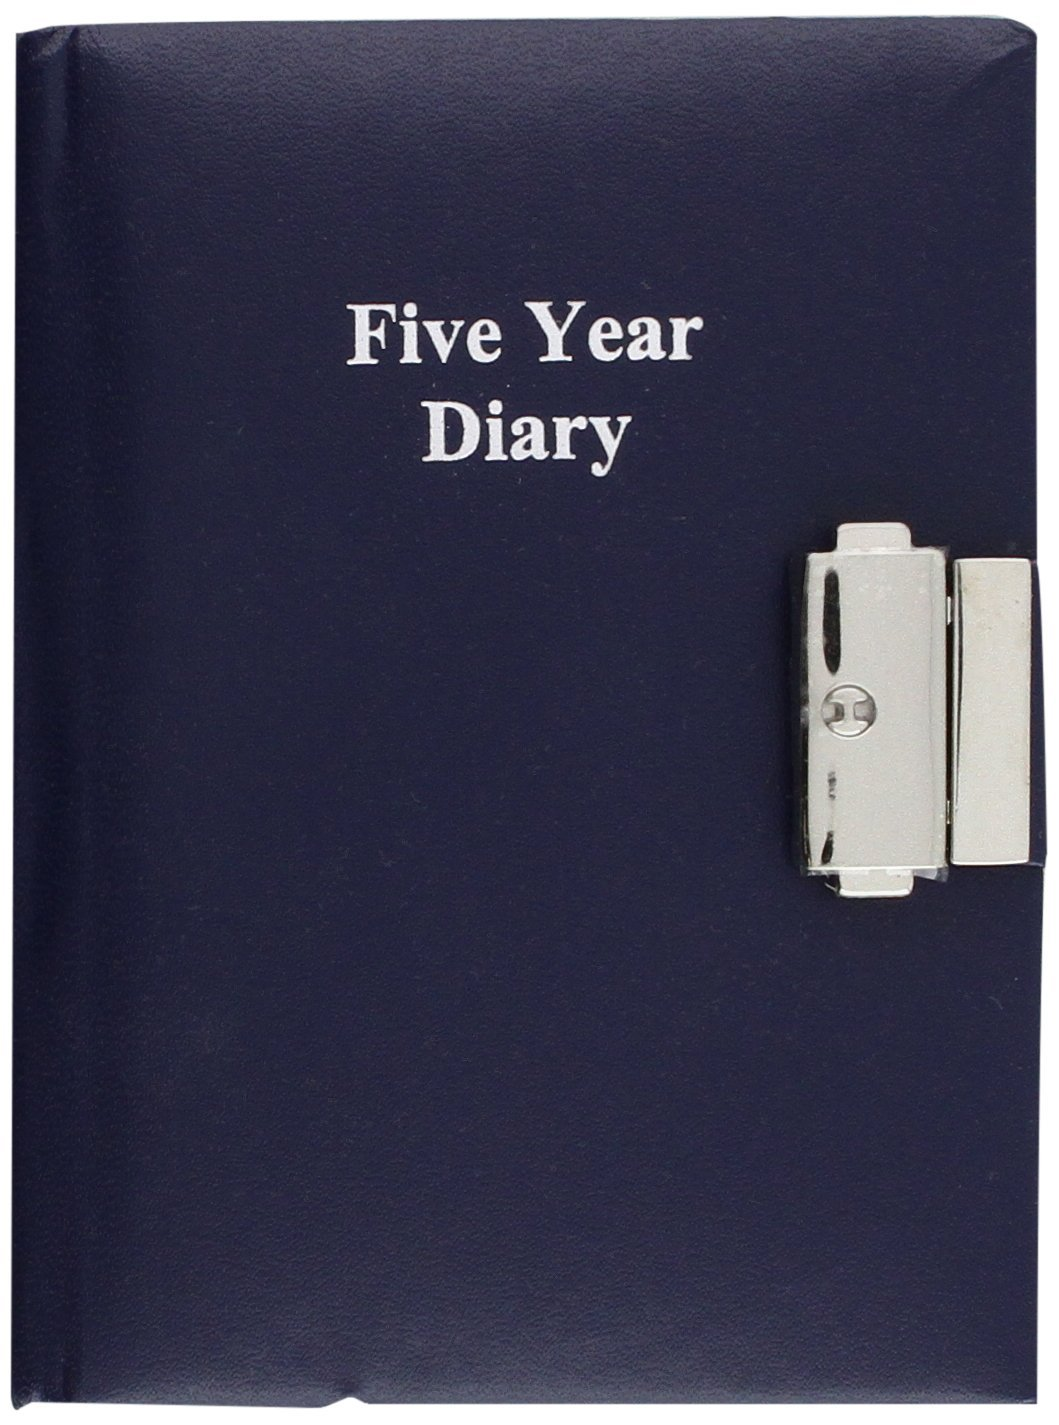 5 Year Undated Lockable Diary - Black Size: A6 - 4.13 by 5.83 inches